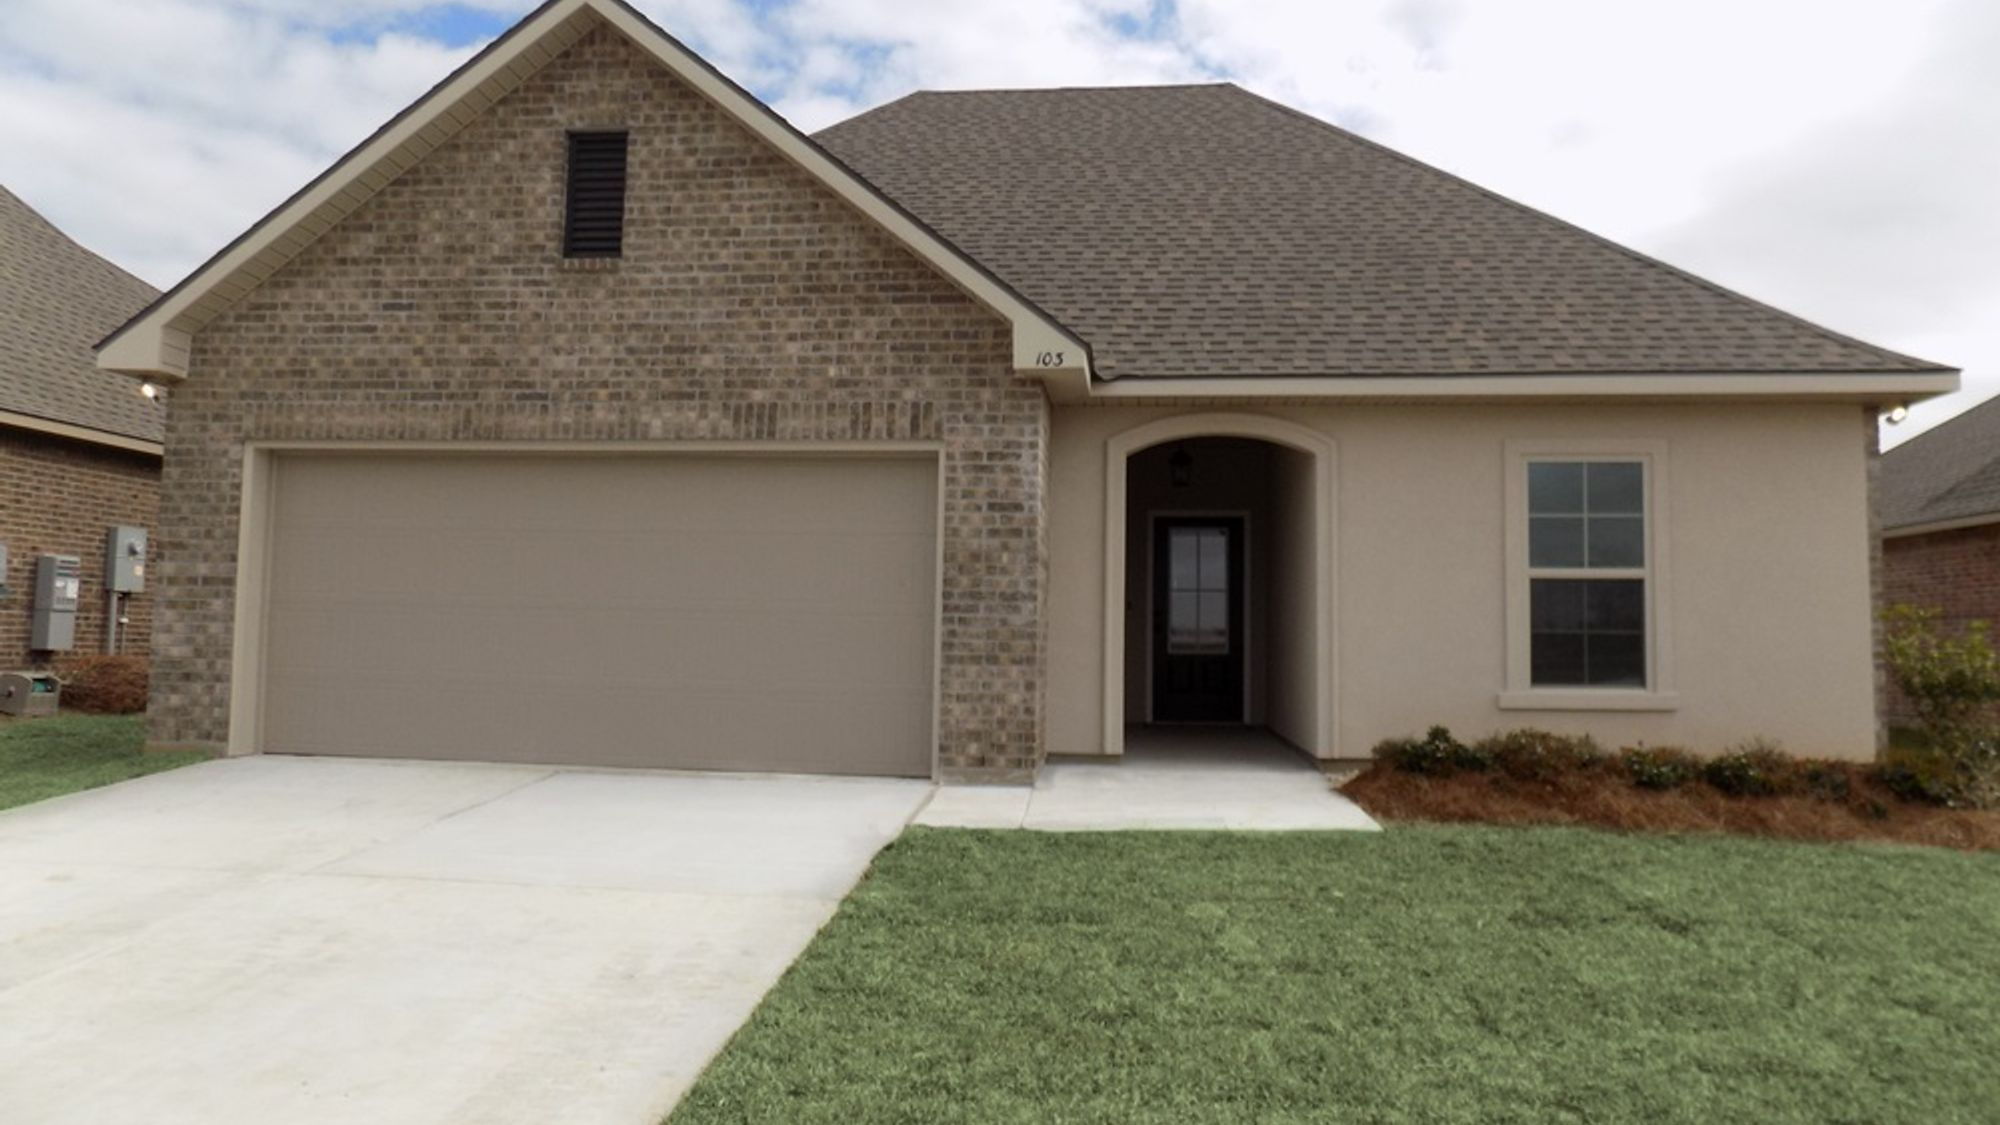 Front View - Paige Place Community - DSLD Homes Broussard